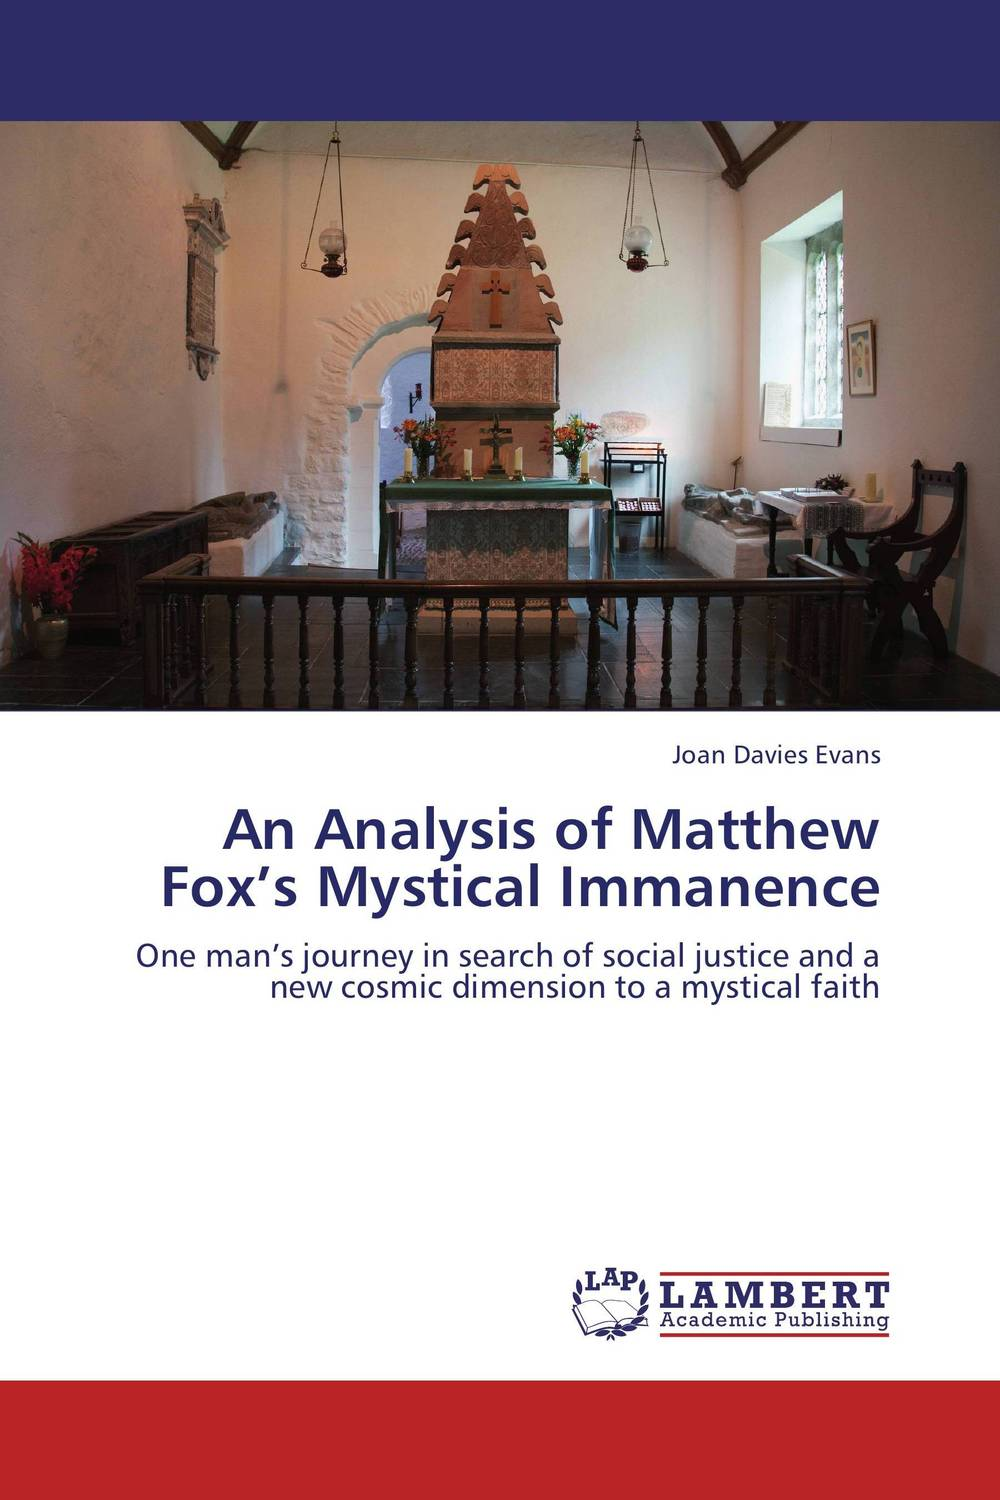 An Analysis of Matthew Fox's Mystical Immanence sola scriptura benedict xvi s theology of the word of god